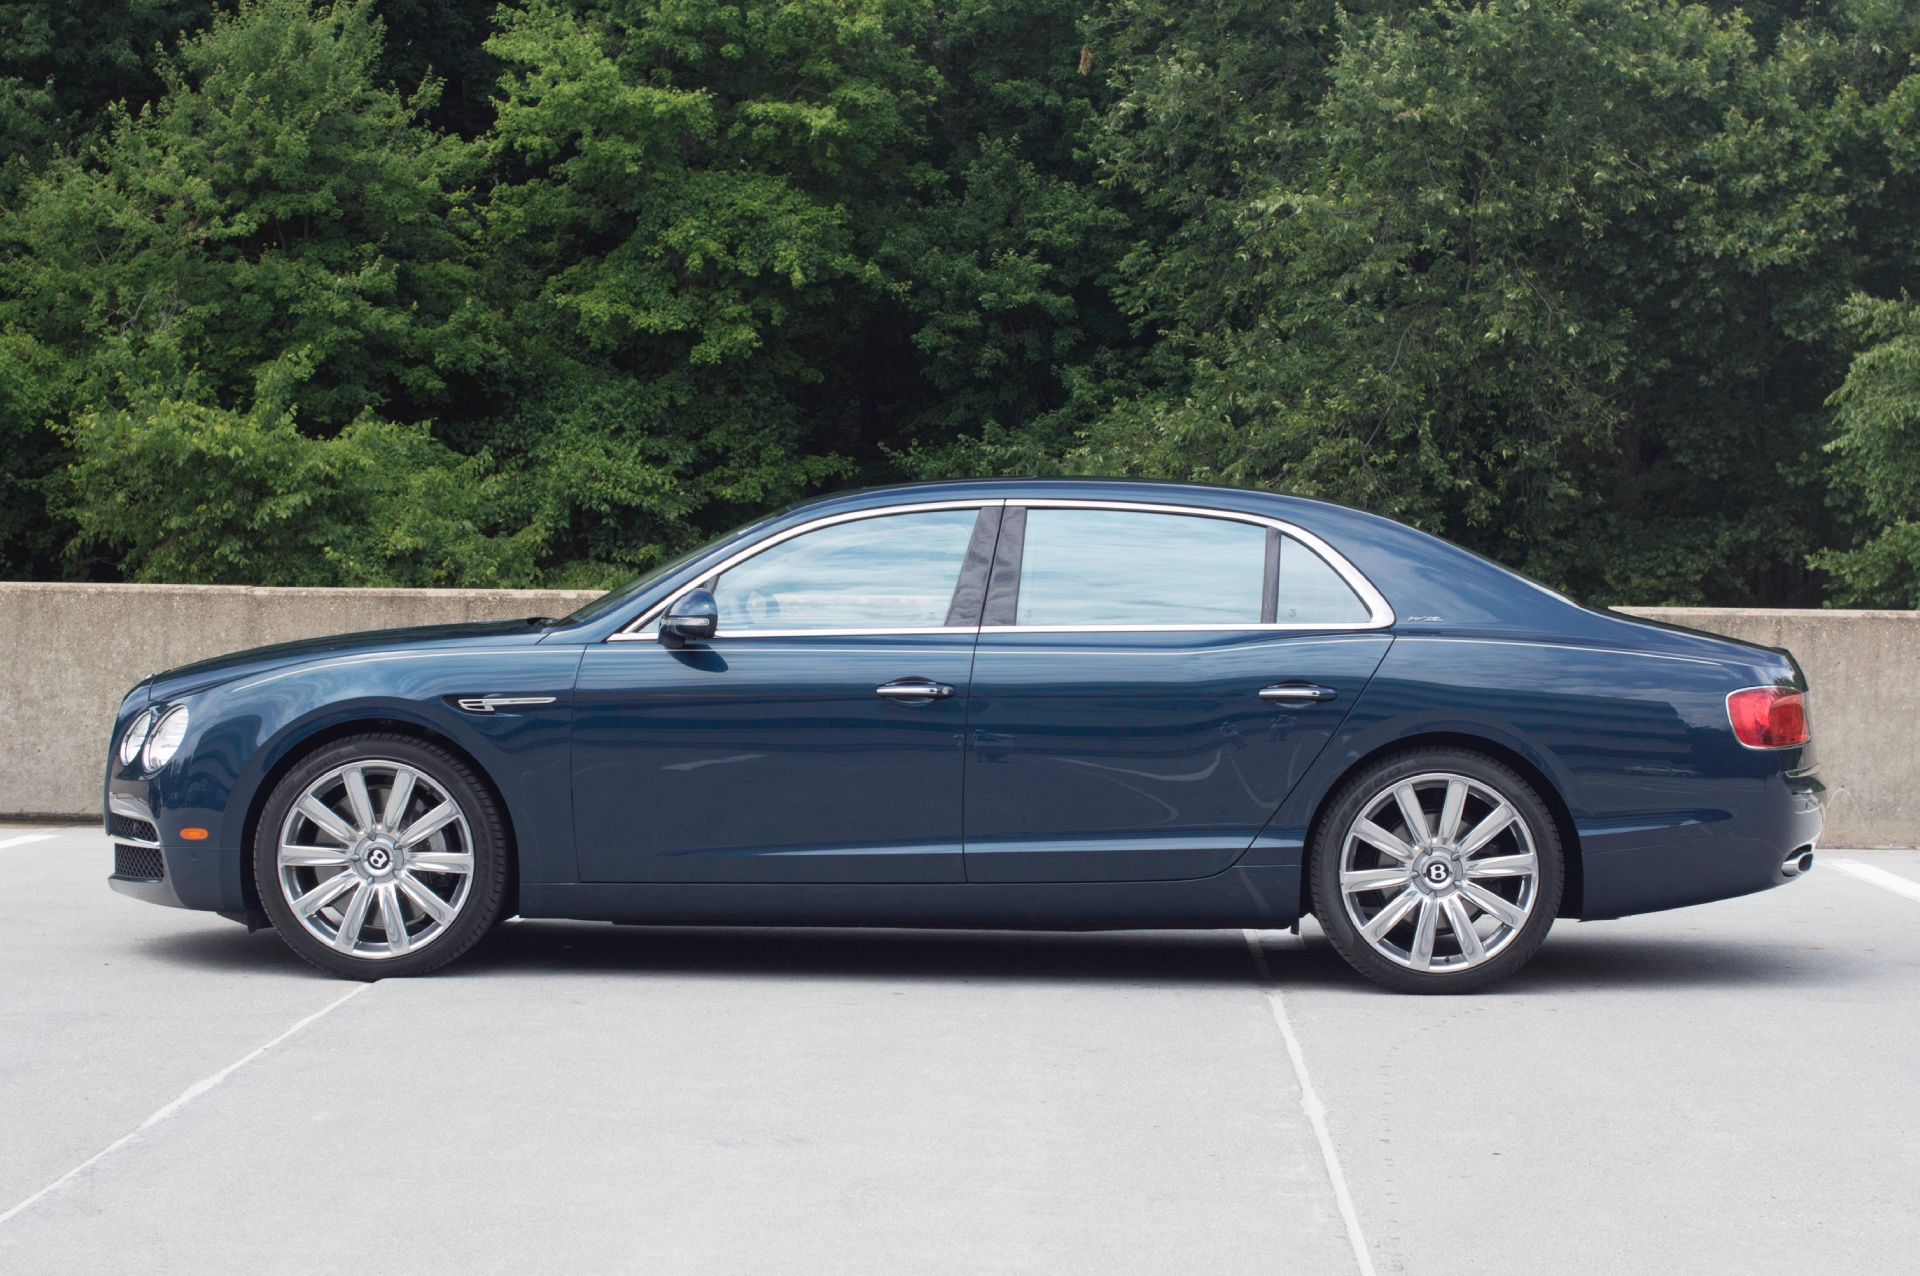 2014 Bentley Flying Spur Stock # 4NC095550 for sale near Vienna, VA ...